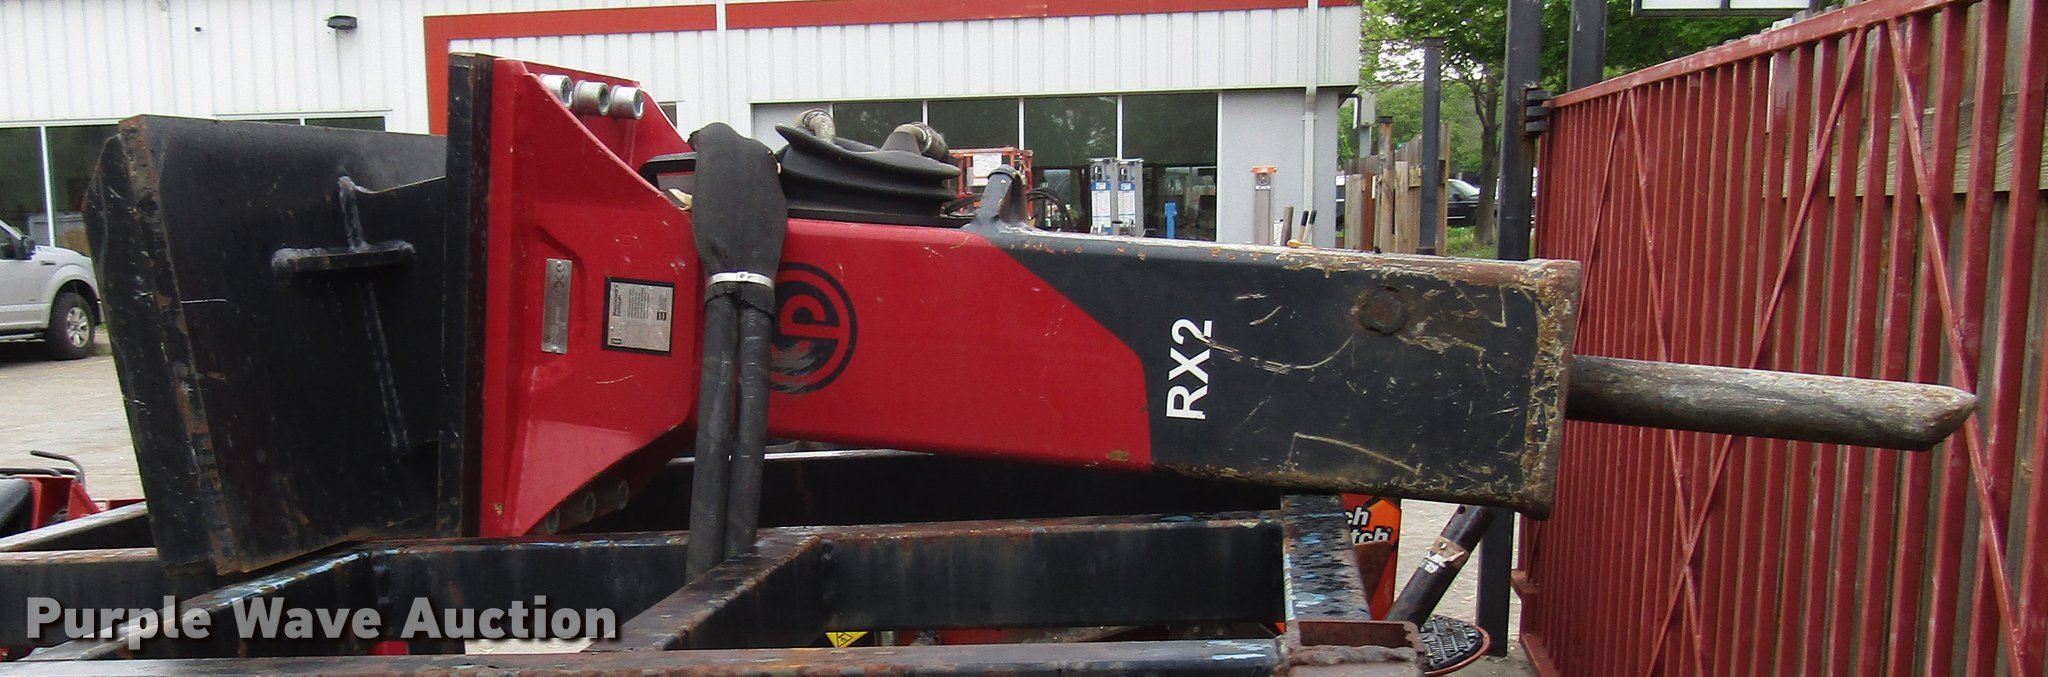 Chicago Pneumatic RX2 Concrete Breaker for sale or rent sunflower equipment rentals topeka lawrence kansas blue springs missouri